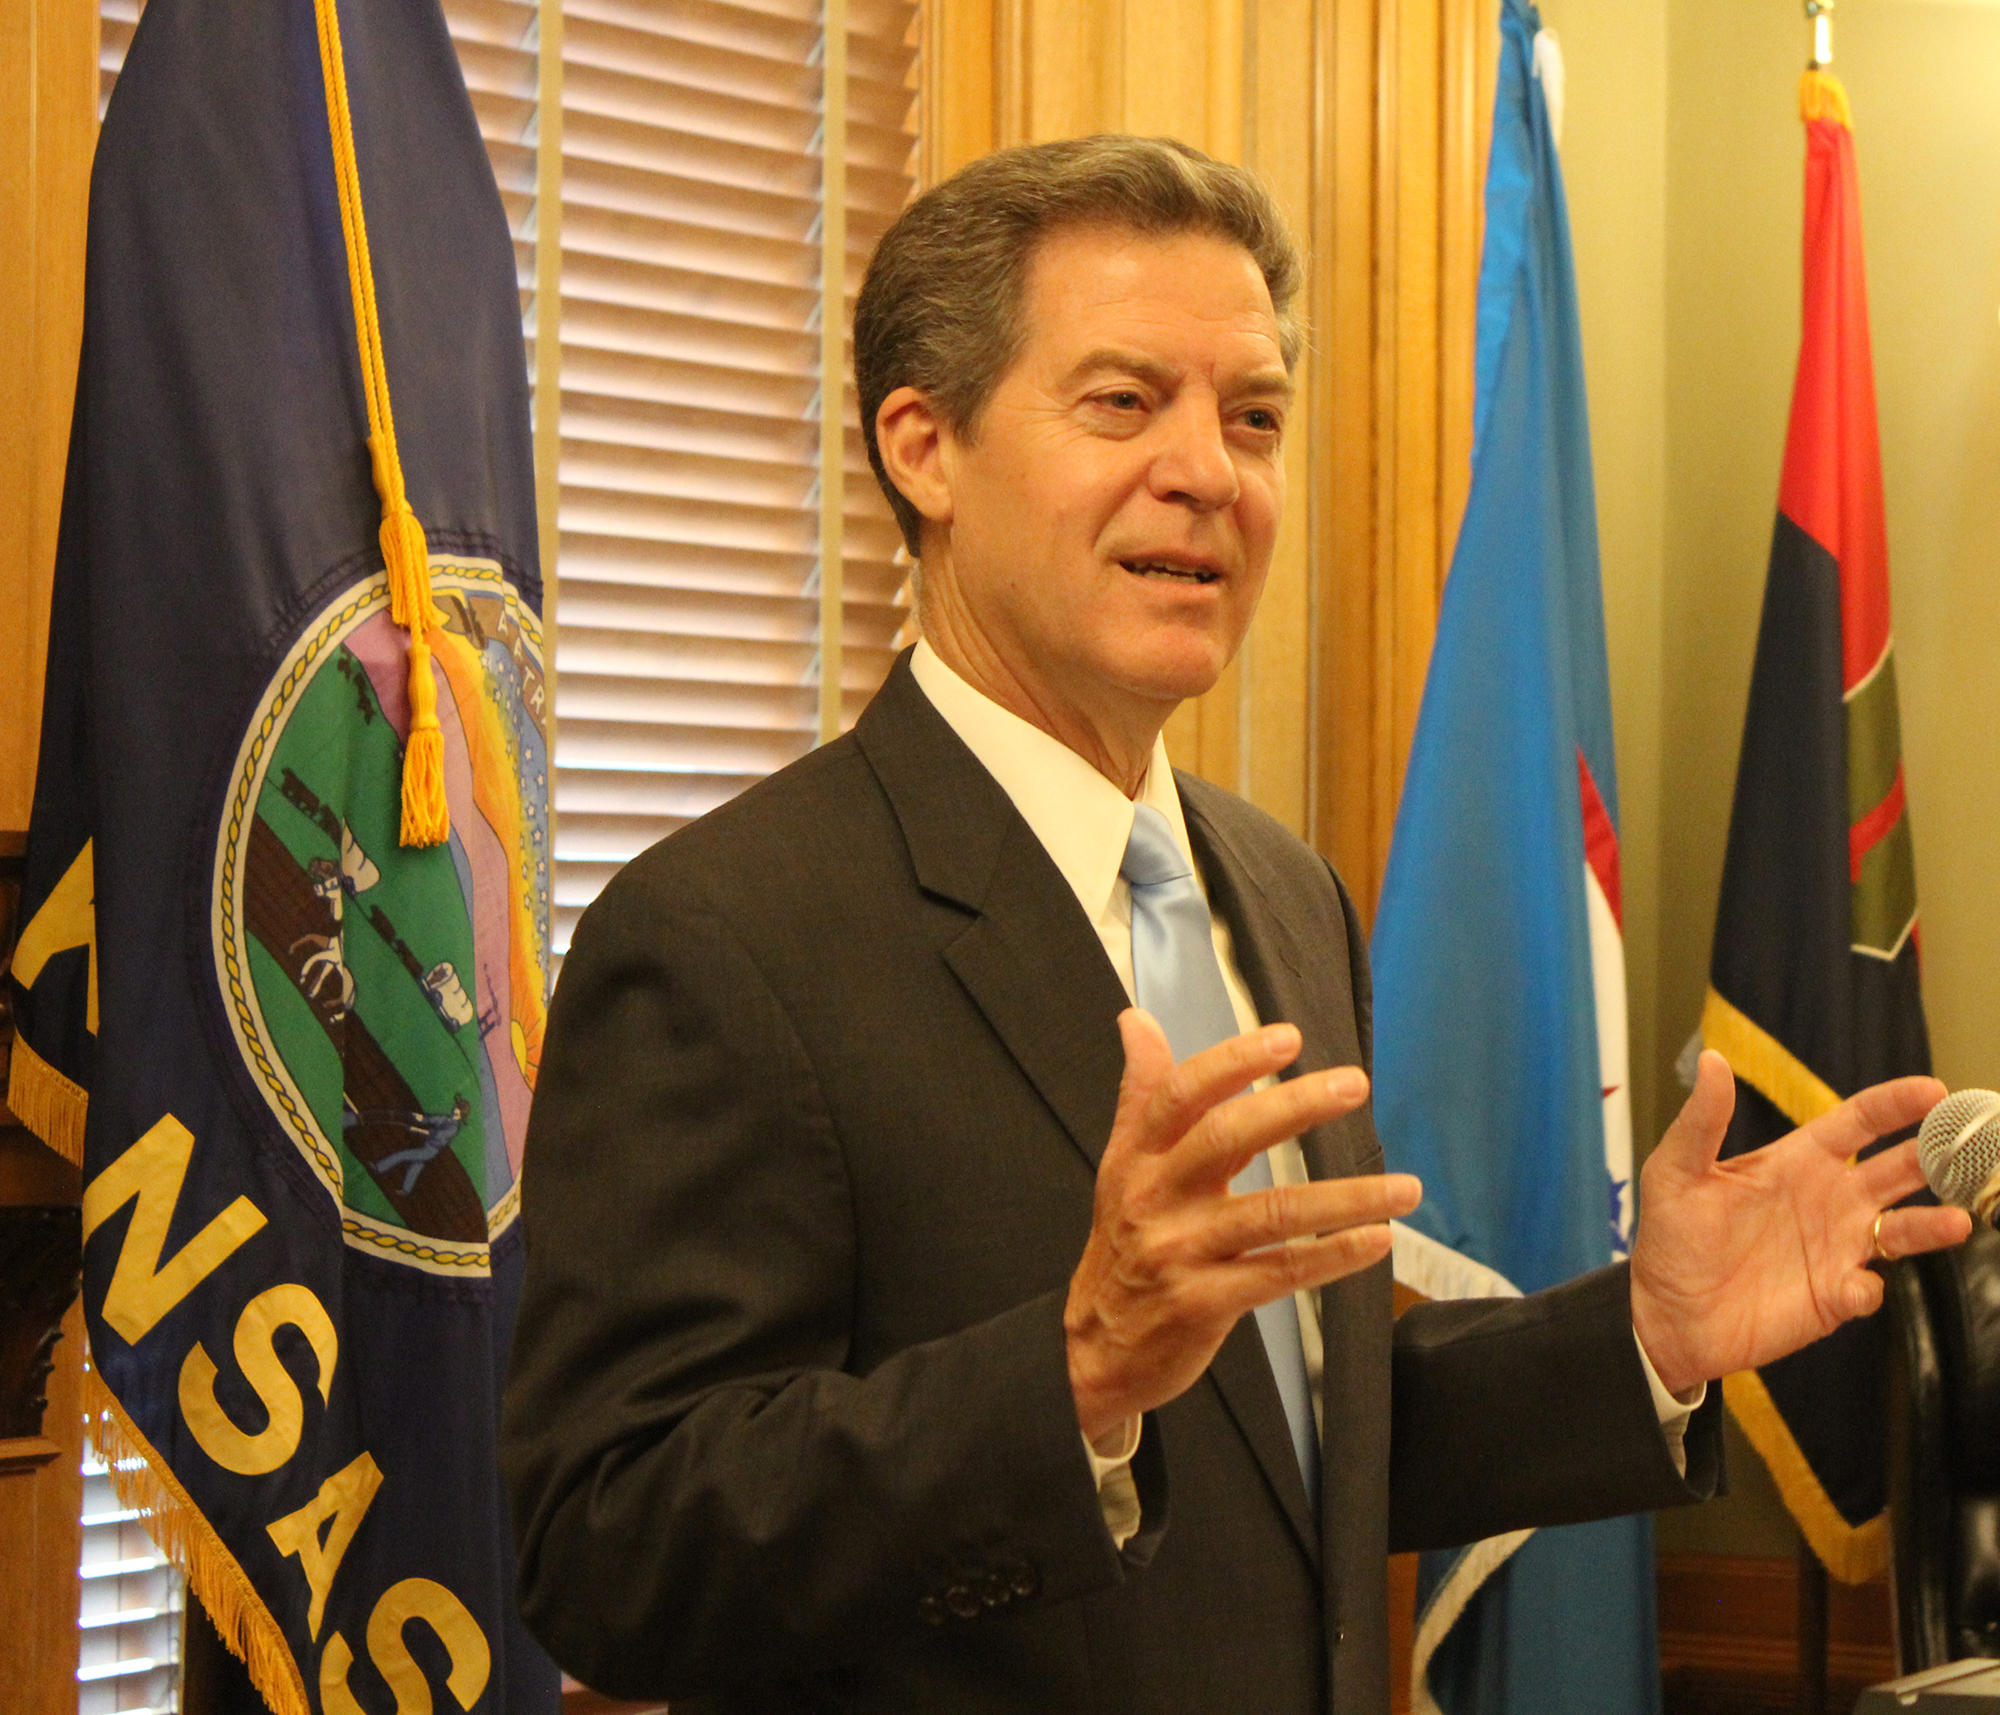 Brownback Announces Salary Increase For Kansas Corrections Officers ...